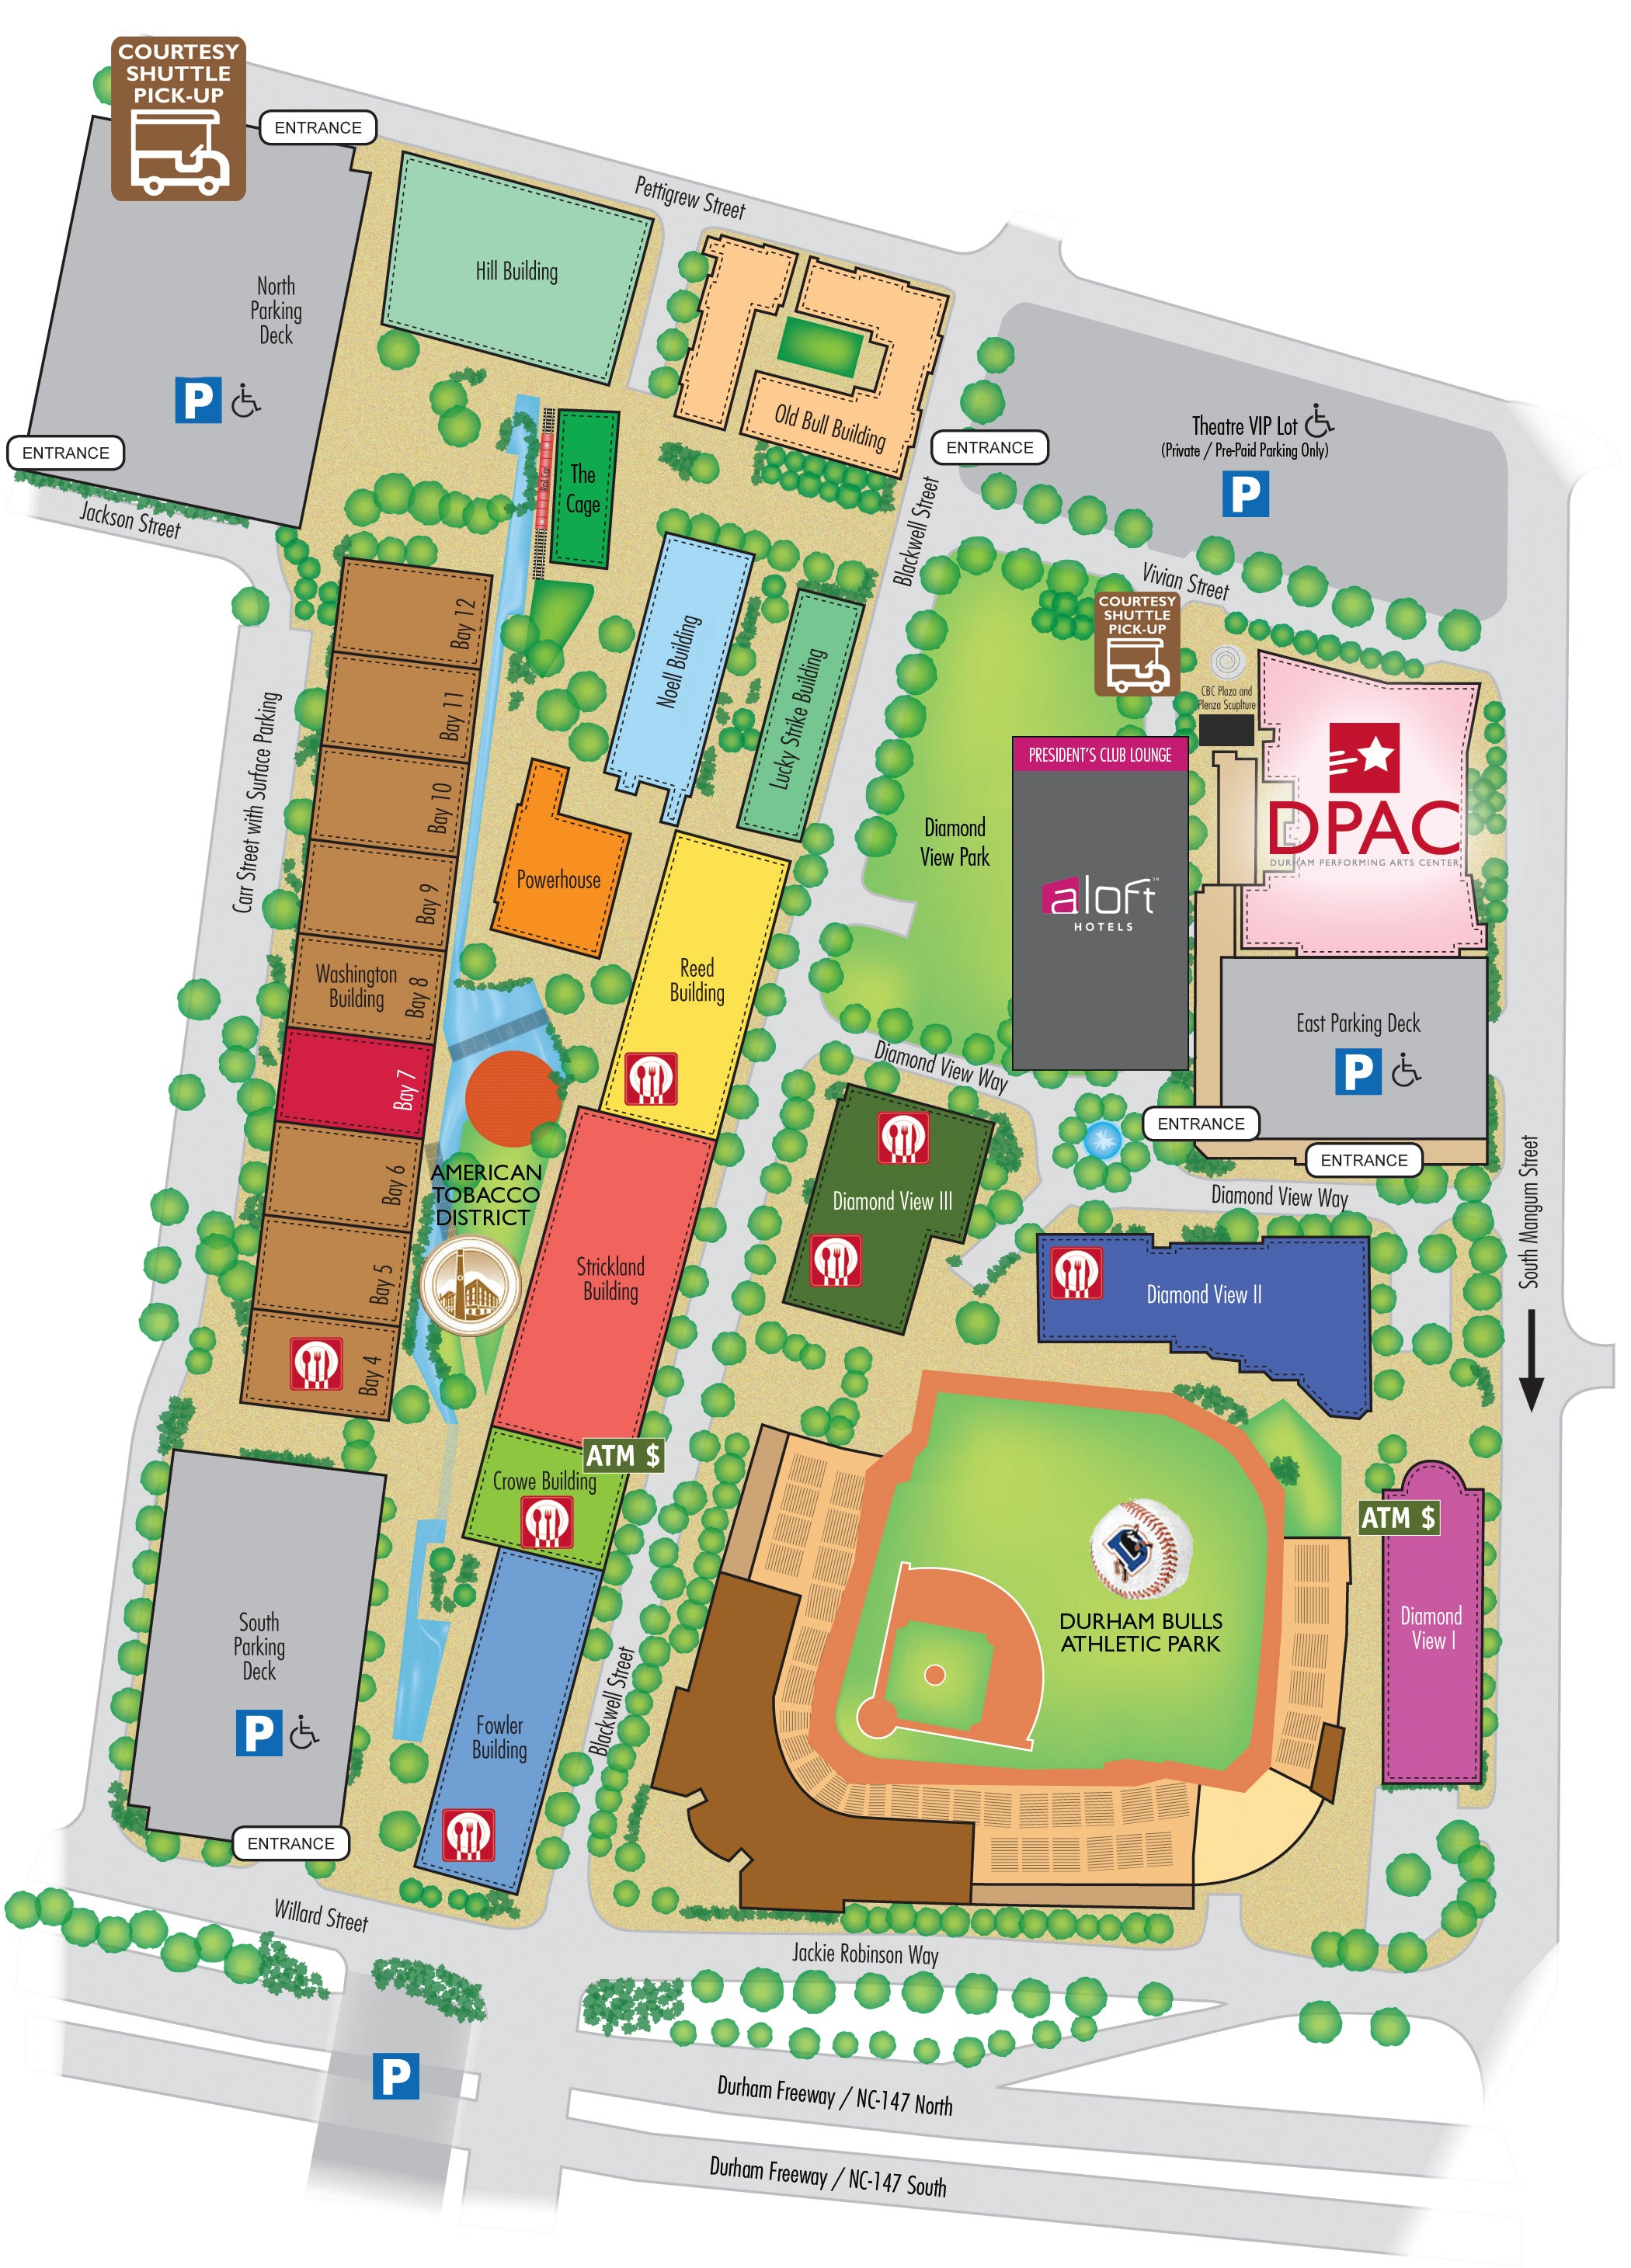 DPAC | Durham Performing Arts Center Area Map | DPAC Official Site